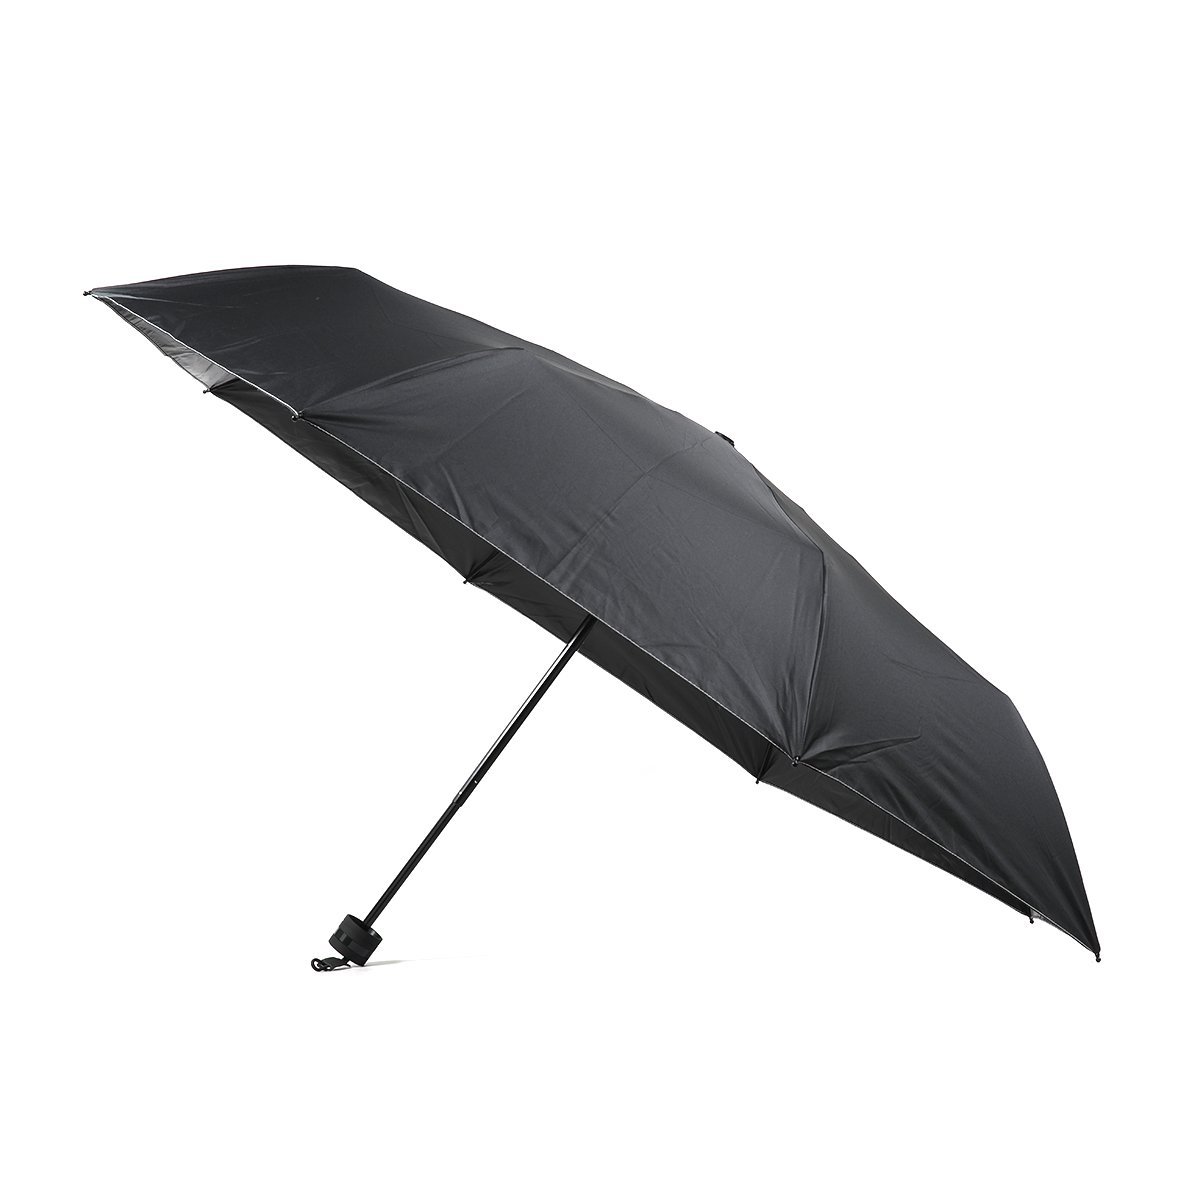 608K UV FOLDING UMBRELLA 詳細画像3